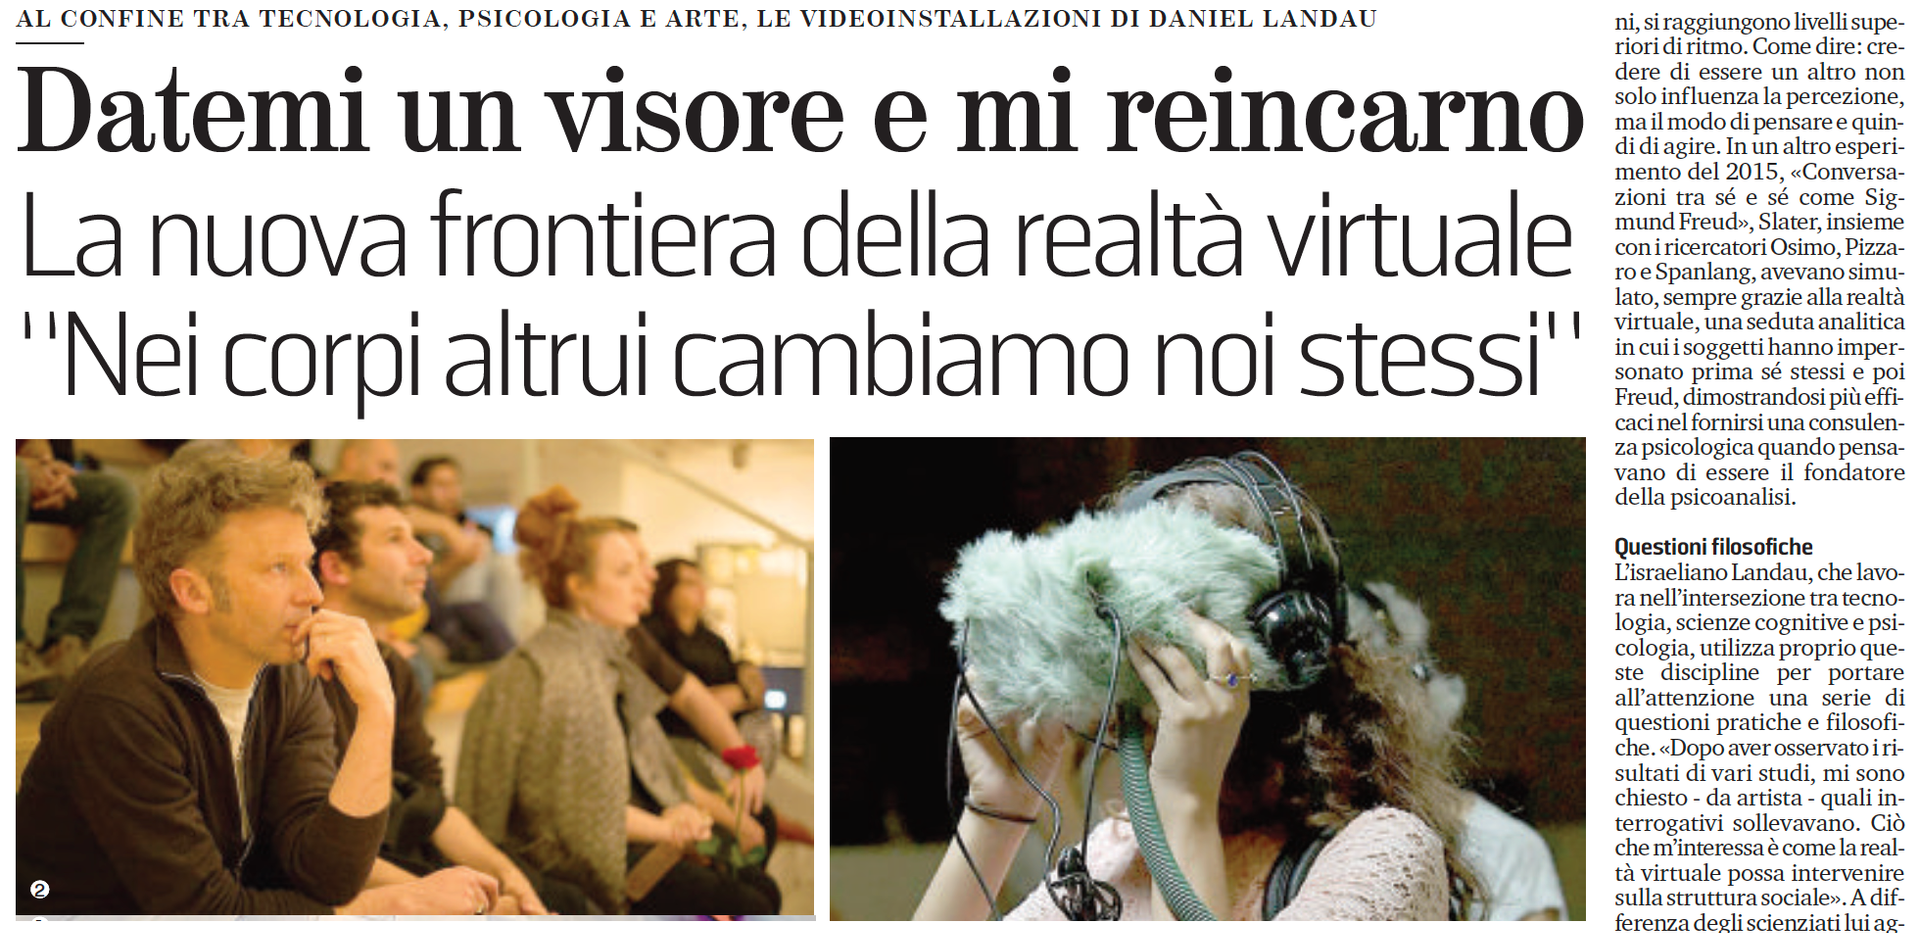 La Stampa - August 4, 2018